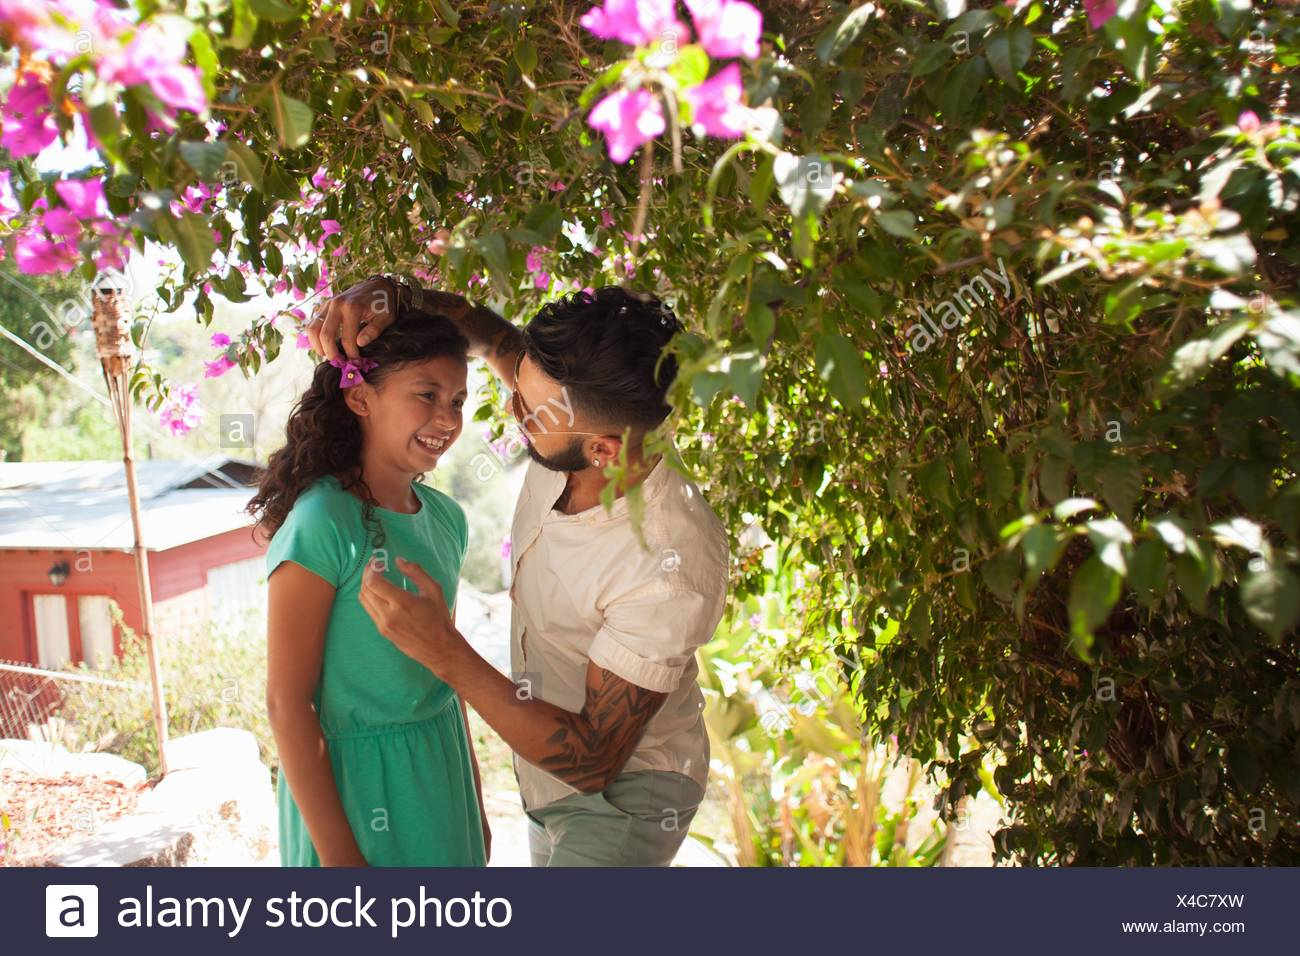 Mid adult man placing flower blossom in daughters hair - Stock Image